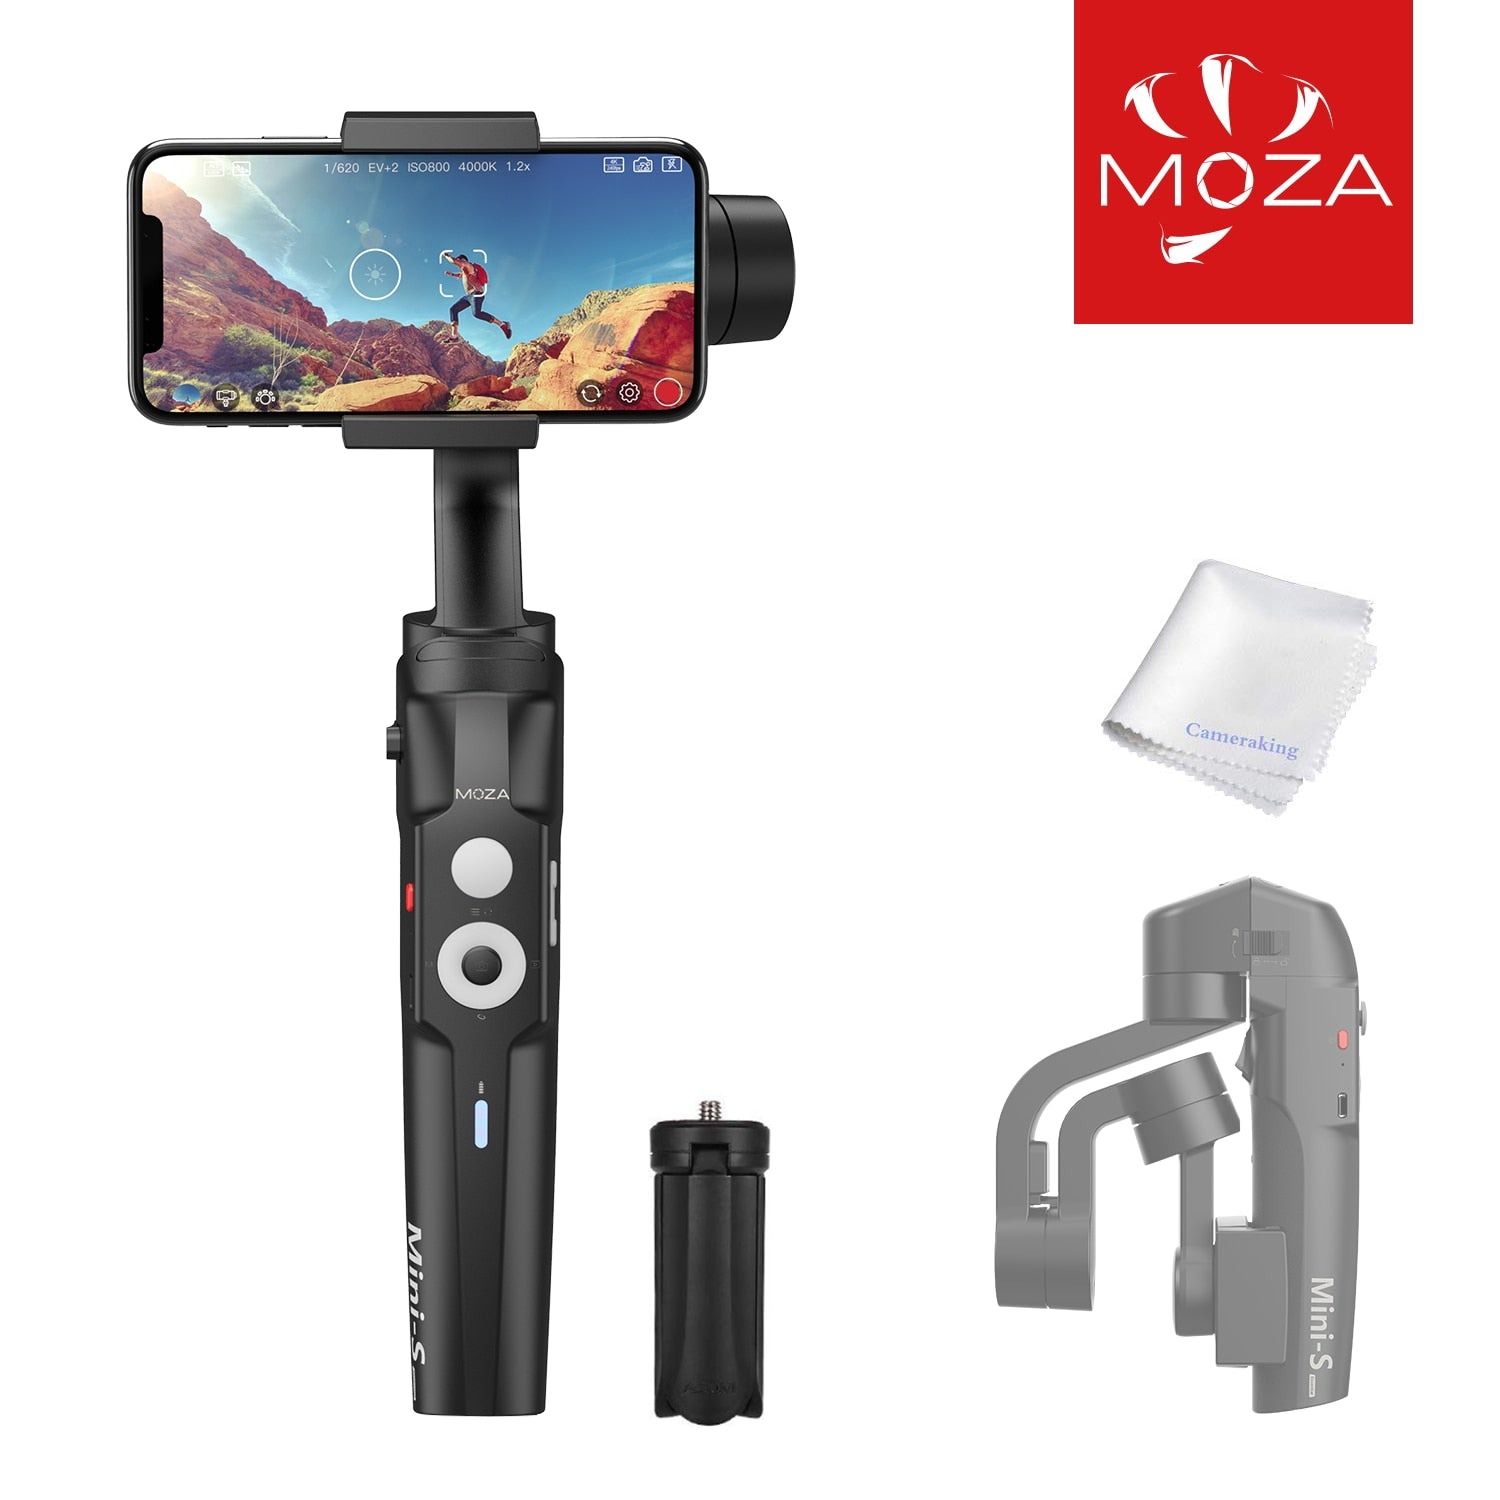 Mini-S Essential Foldable Gimbal stabilizer for Smartphone Timelapse Object Tracking Zoom Vertigo Inception